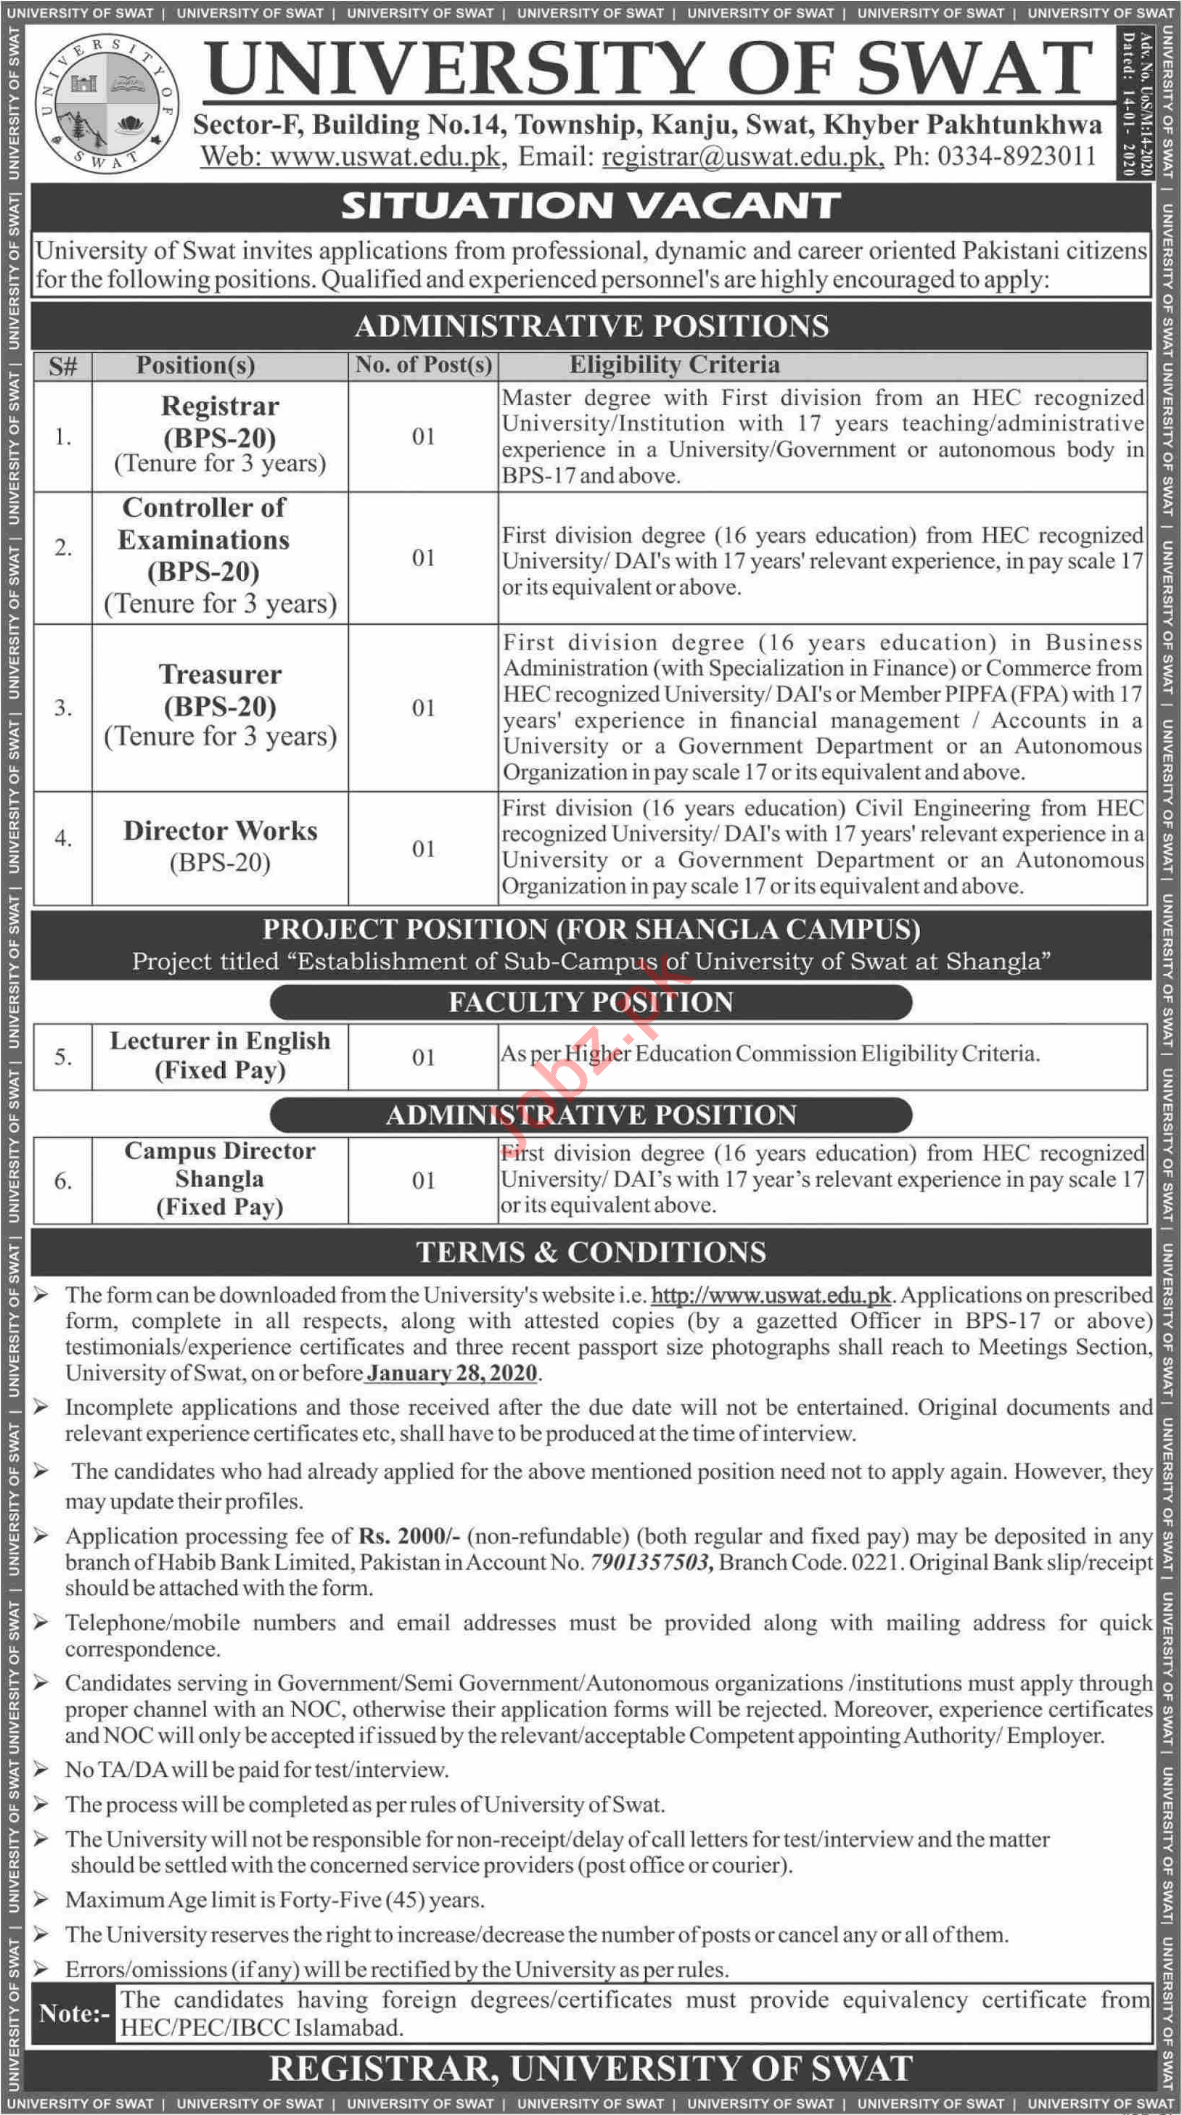 University of Swat Jobs For Faculty & Administrative Staff